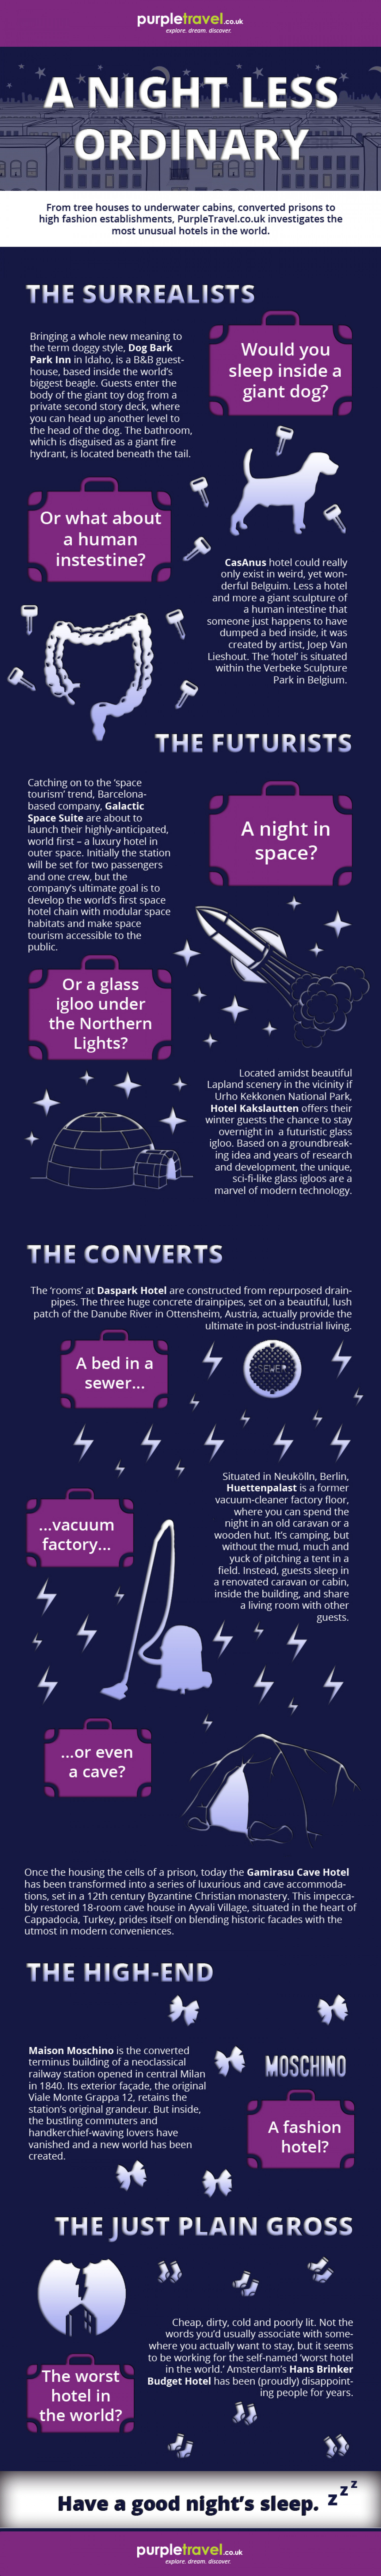 A Night Less Ordinary Infographic